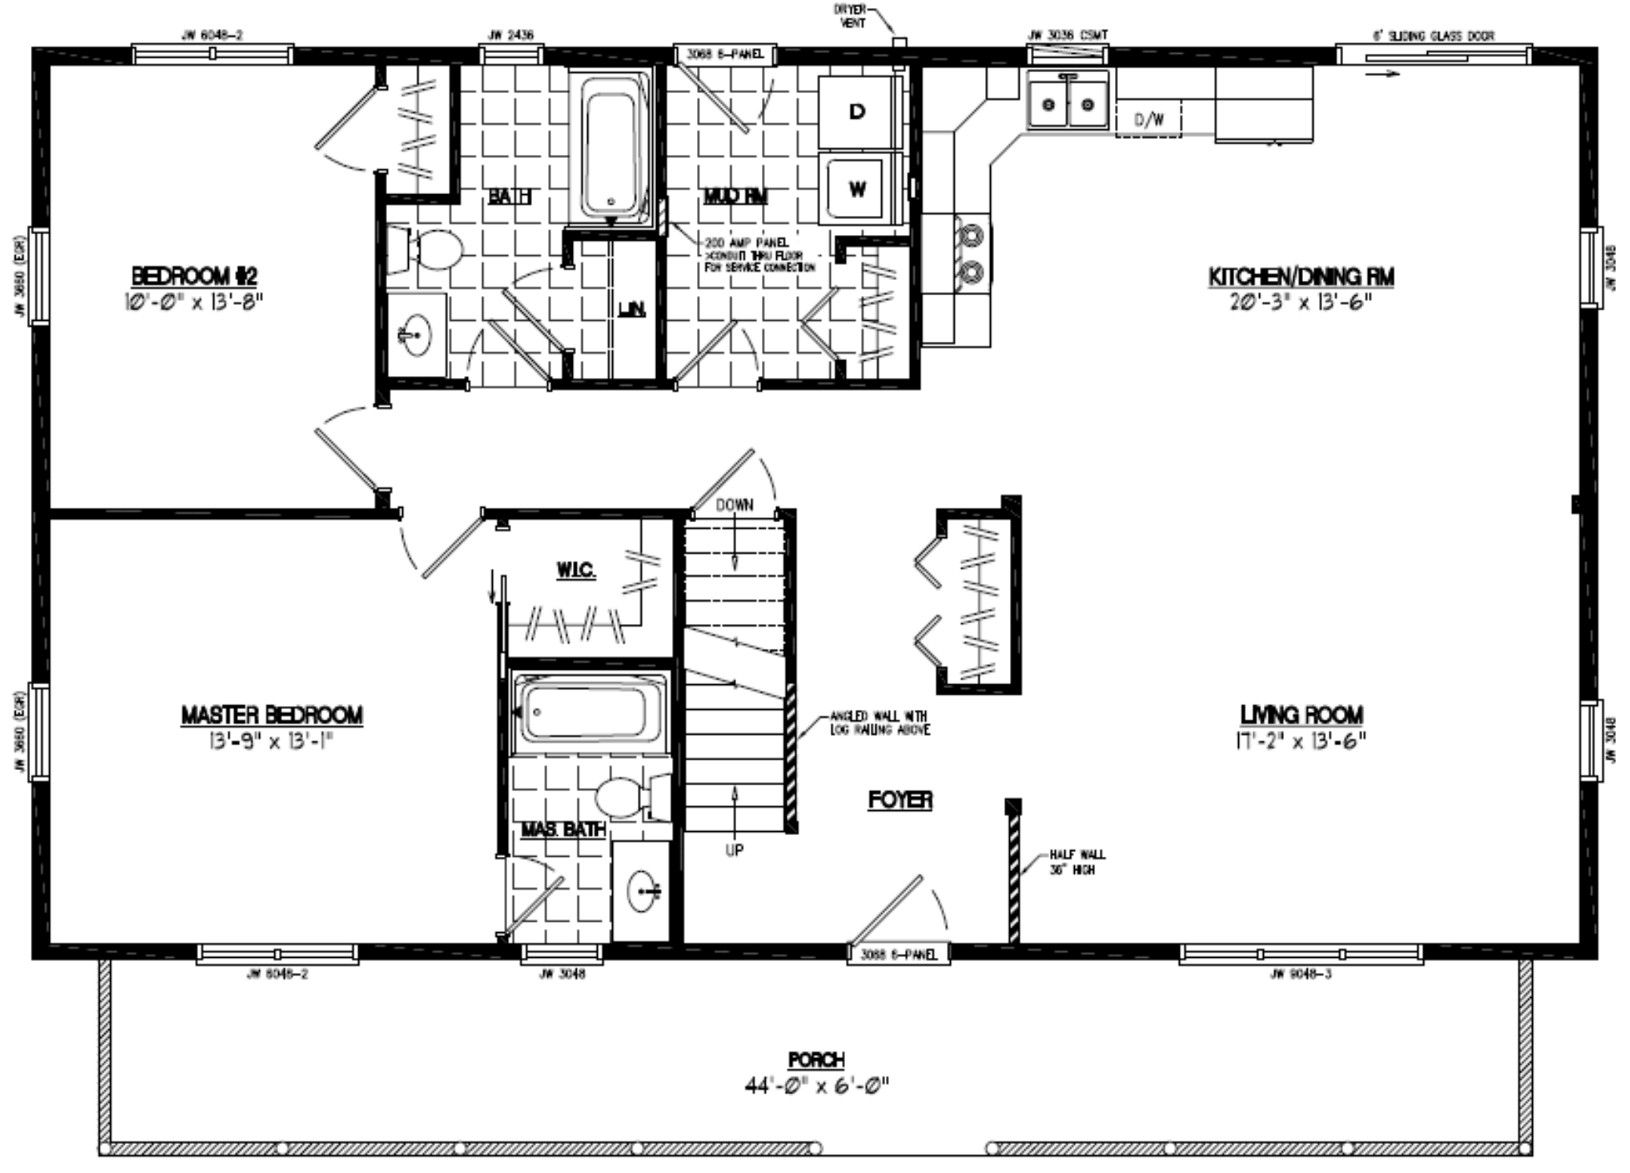 Pin by Teresa White on 2 bedroom 2 bath house plans in